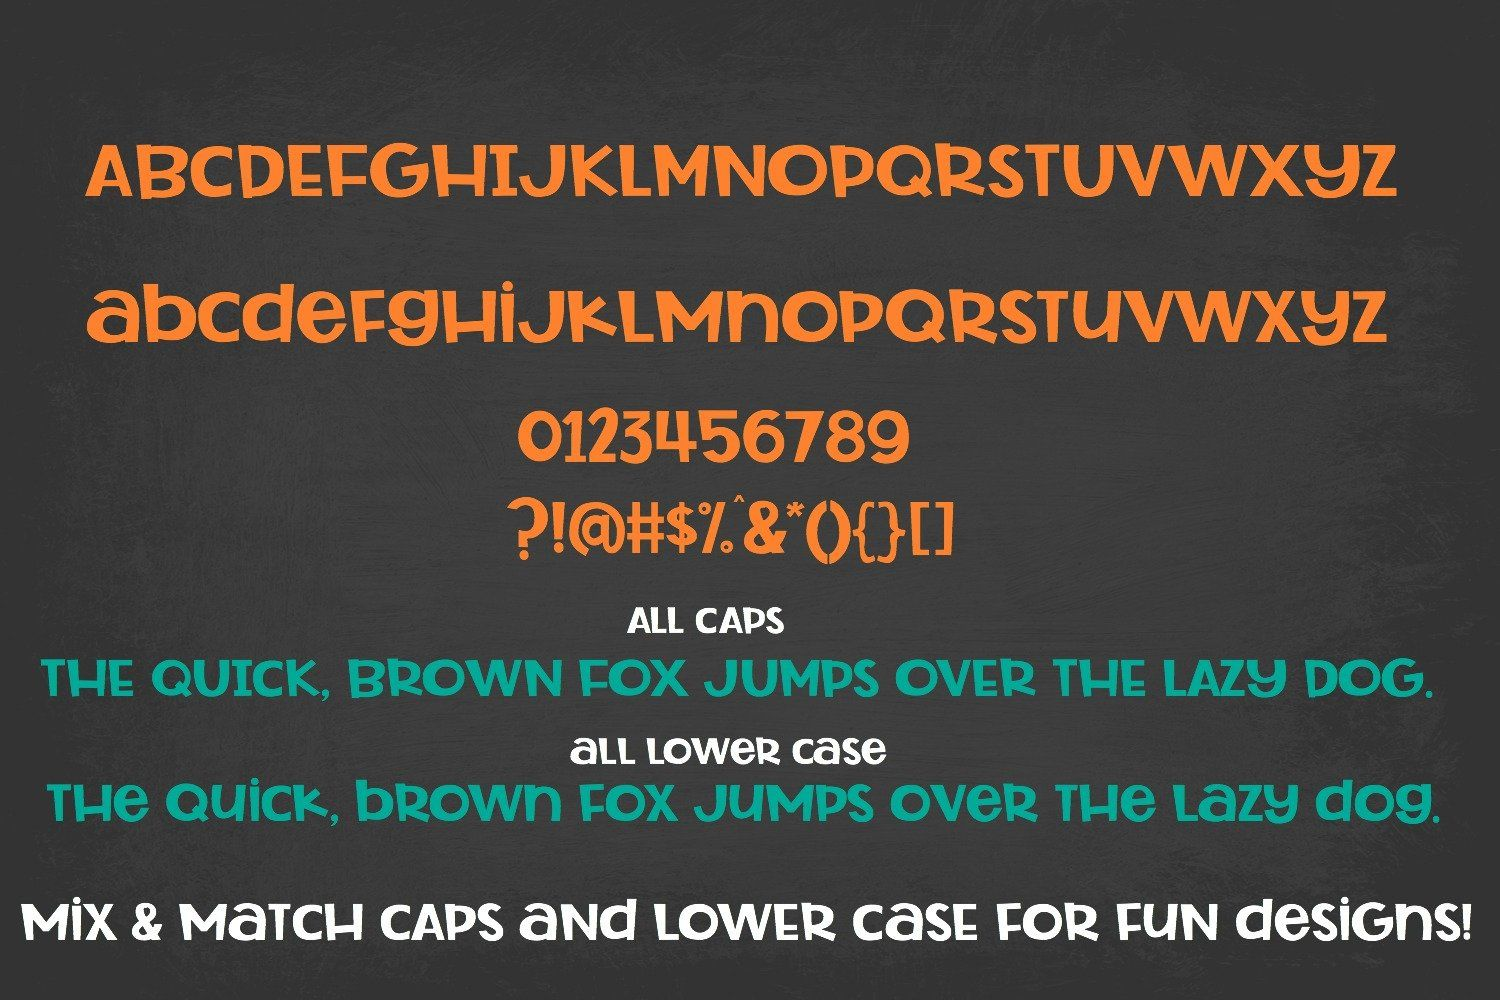 Rocket Science Layering Font Kids school supplies